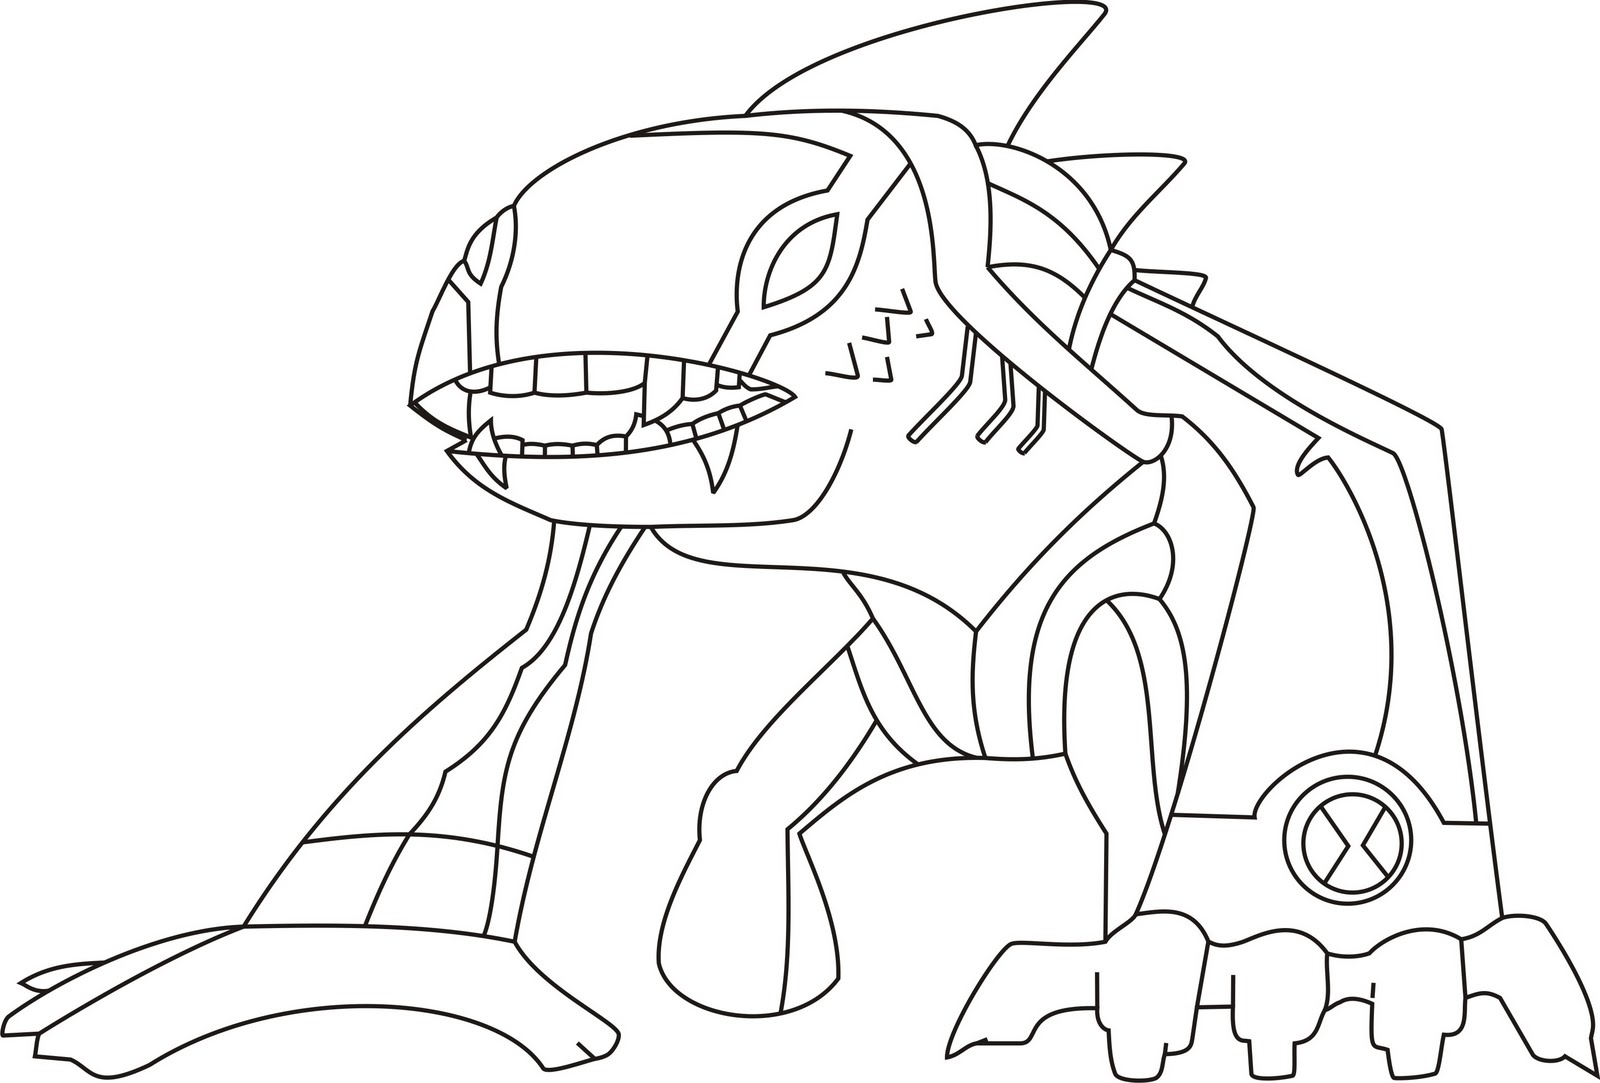 coloring pages ben 10 - photo#16